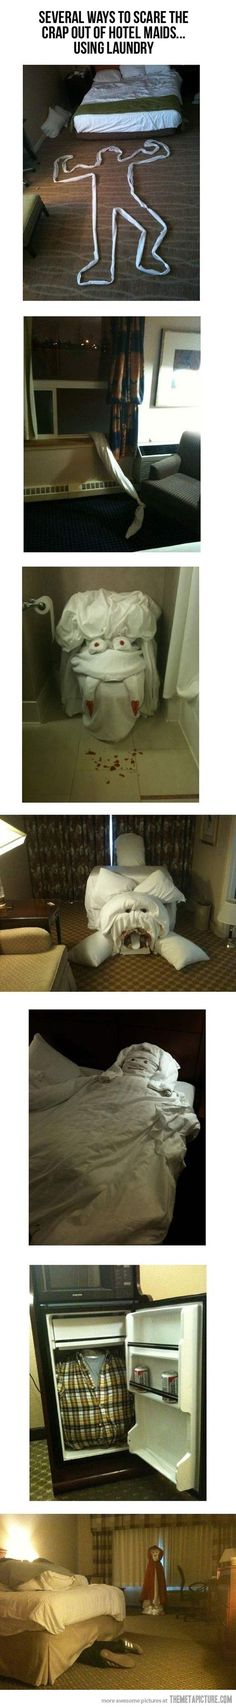 For unsuspecting hotel staff.